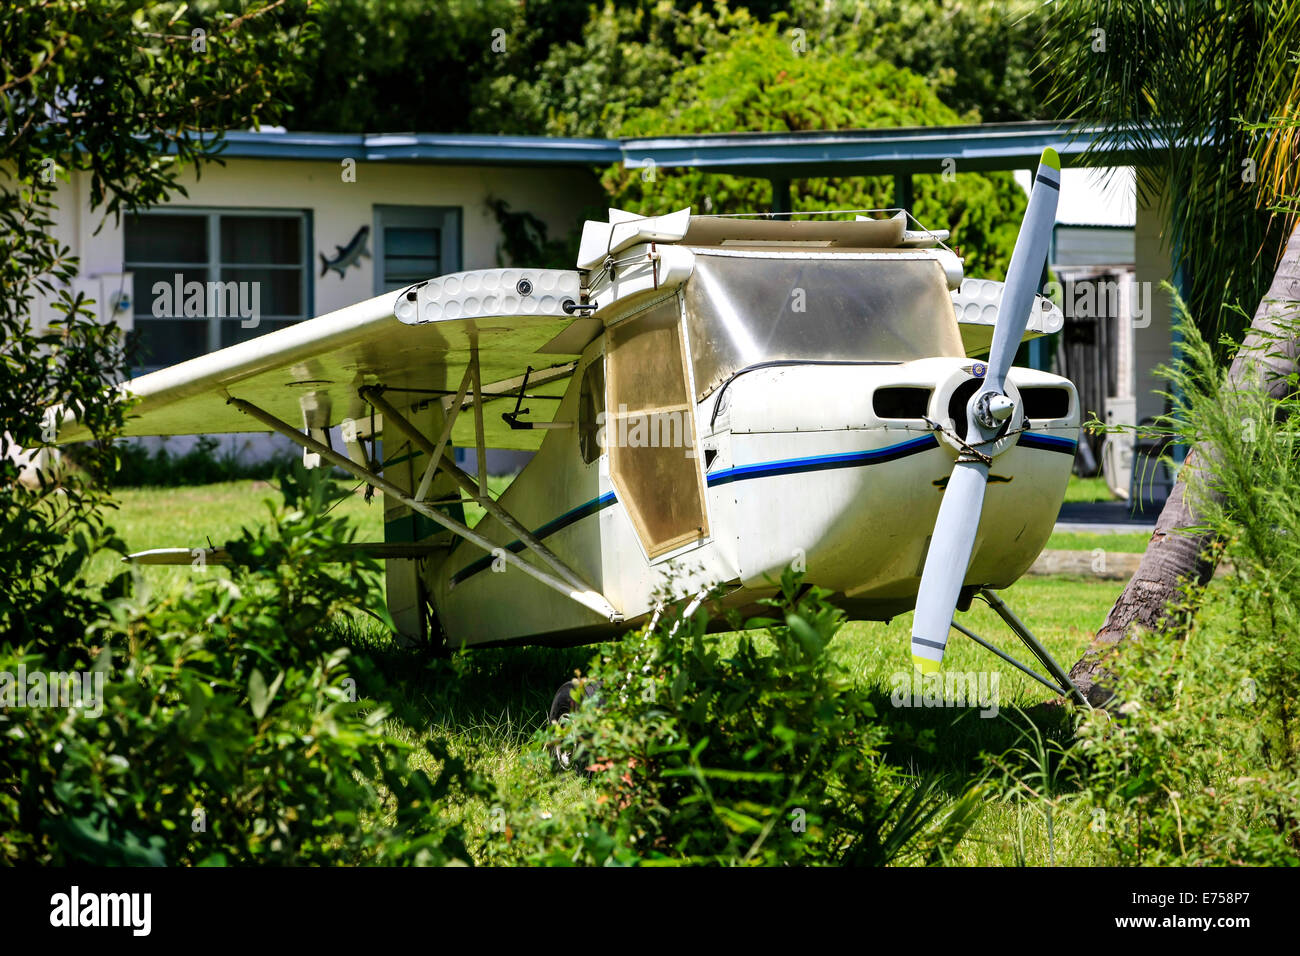 Old aircraft abandoned in rural SW Florida - Stock Image